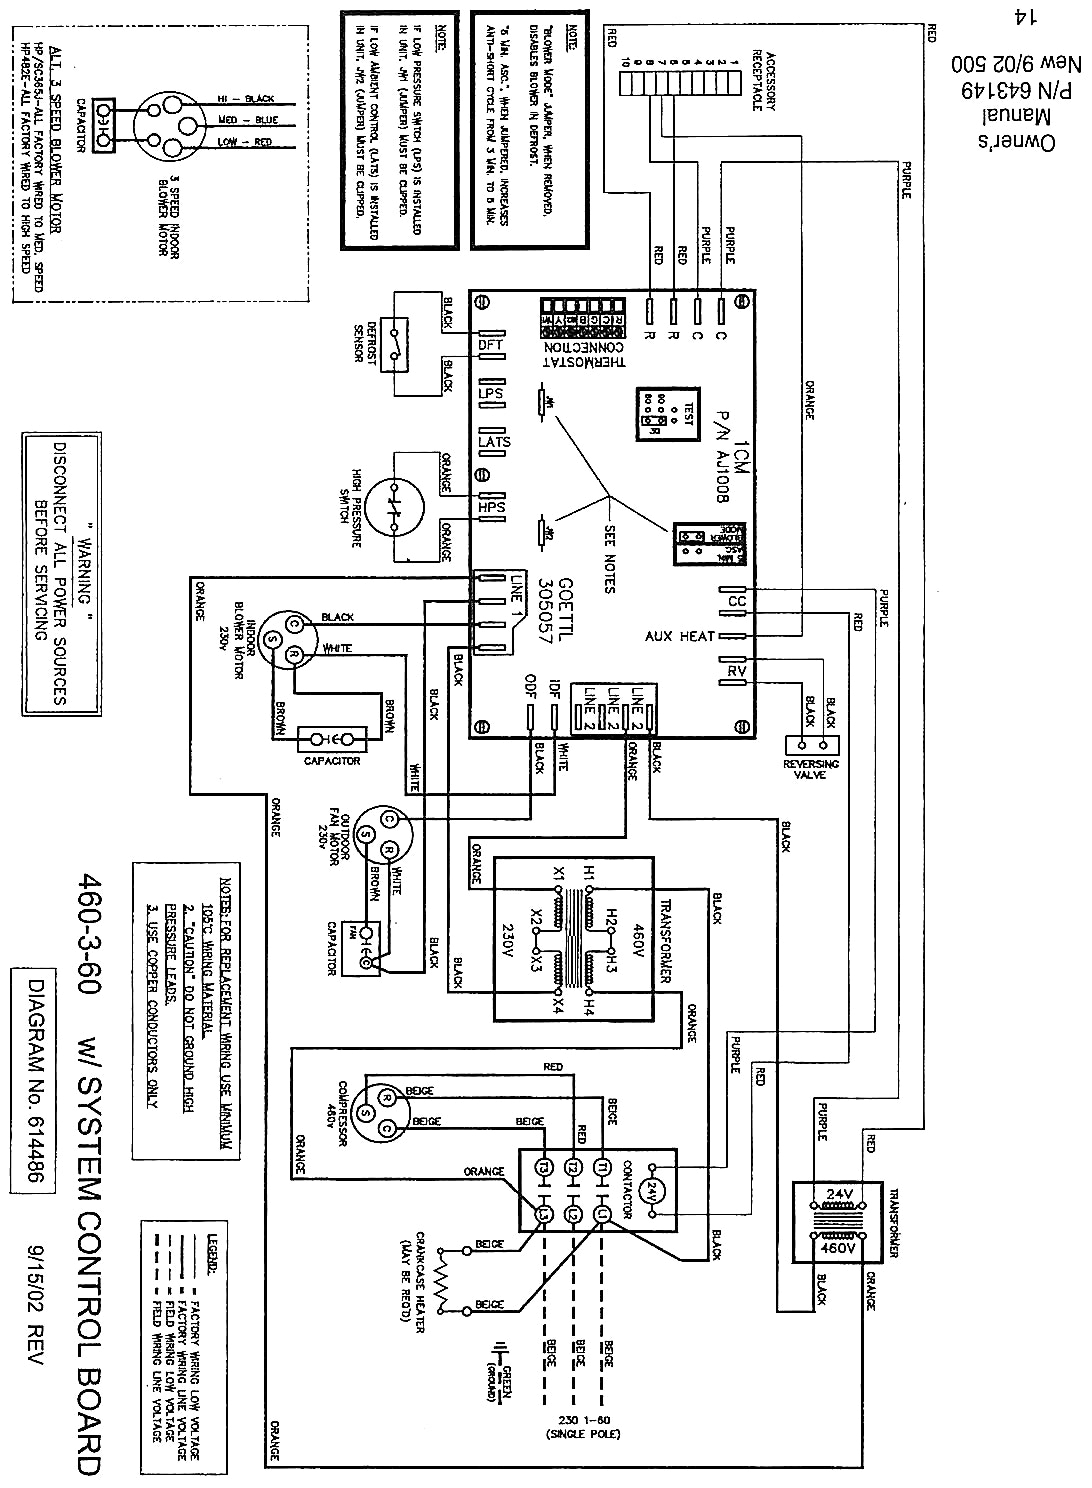 Heat Pump Wiring Diagram Goodman